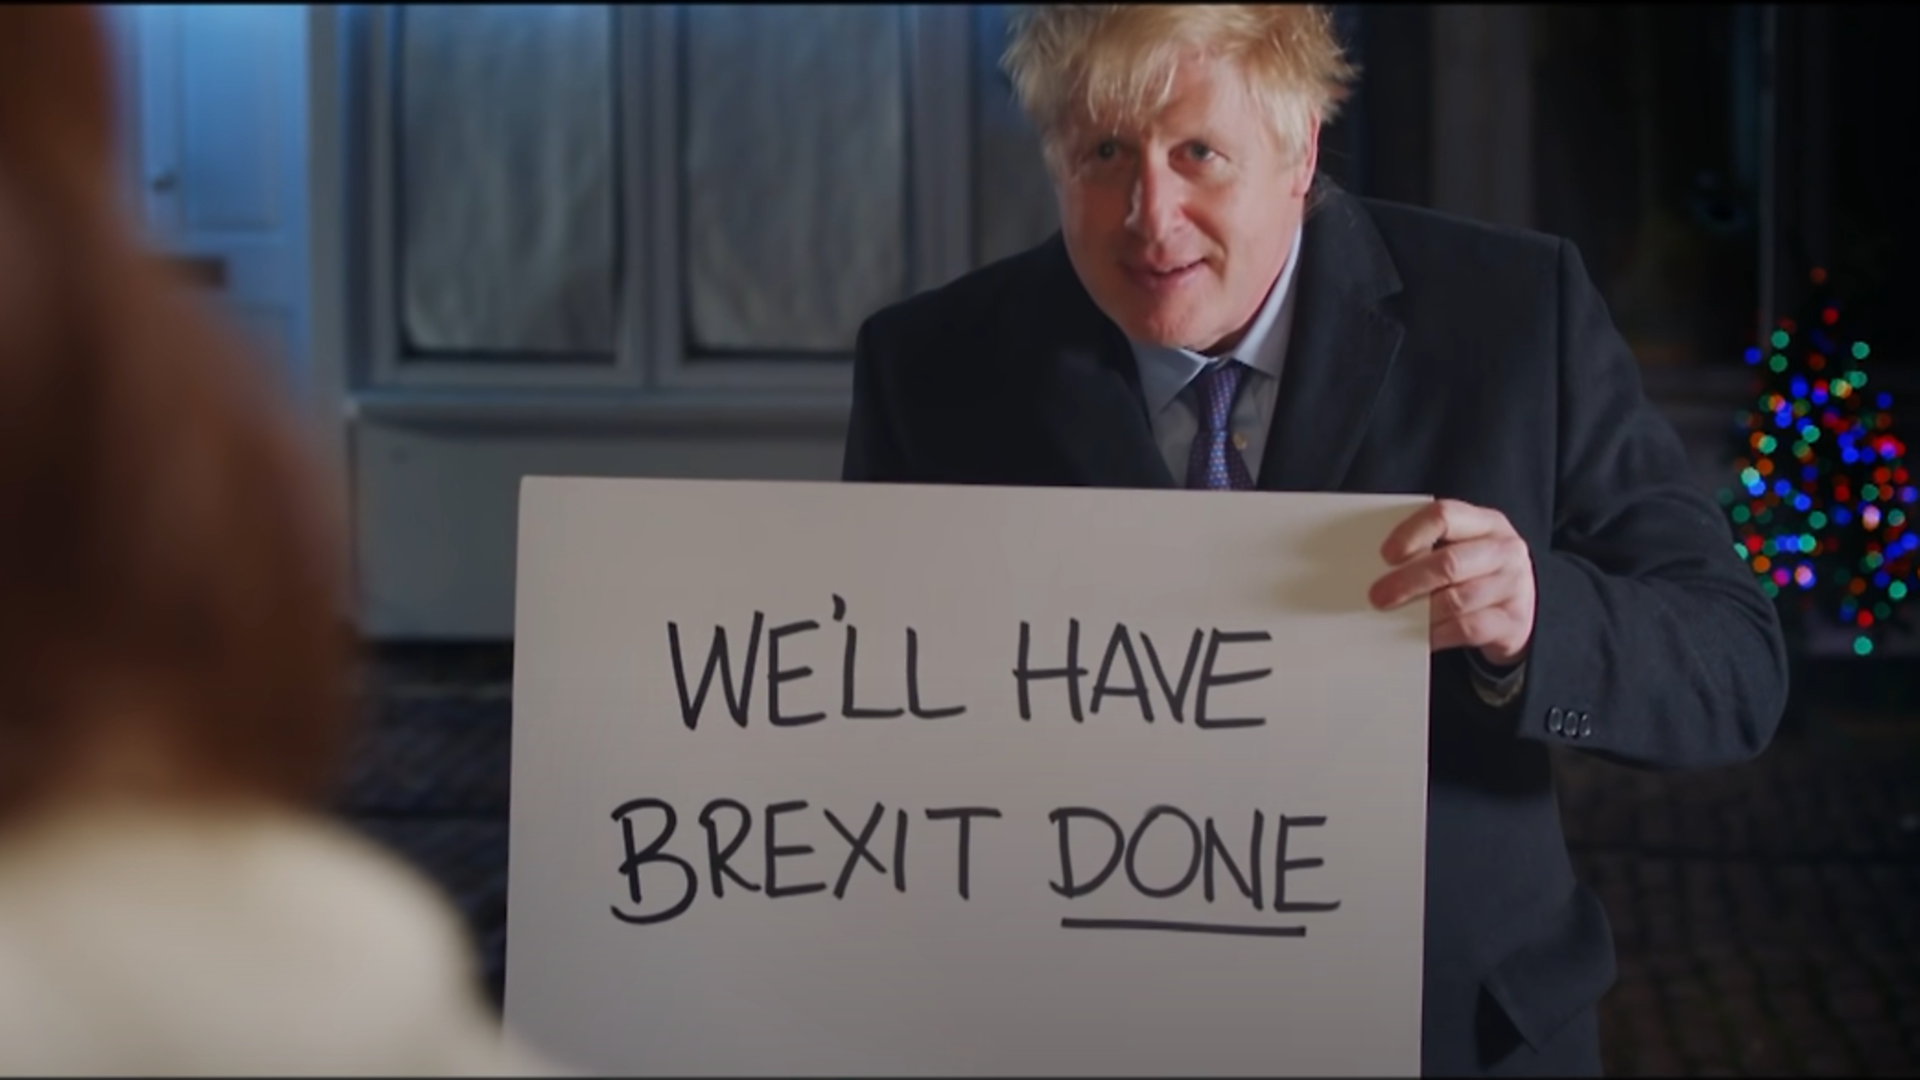 Boris Johnson featured in a Love Actually parody last Christmas - and could unintentionally become Christmas Number 1 this year. - Credit: YouTube